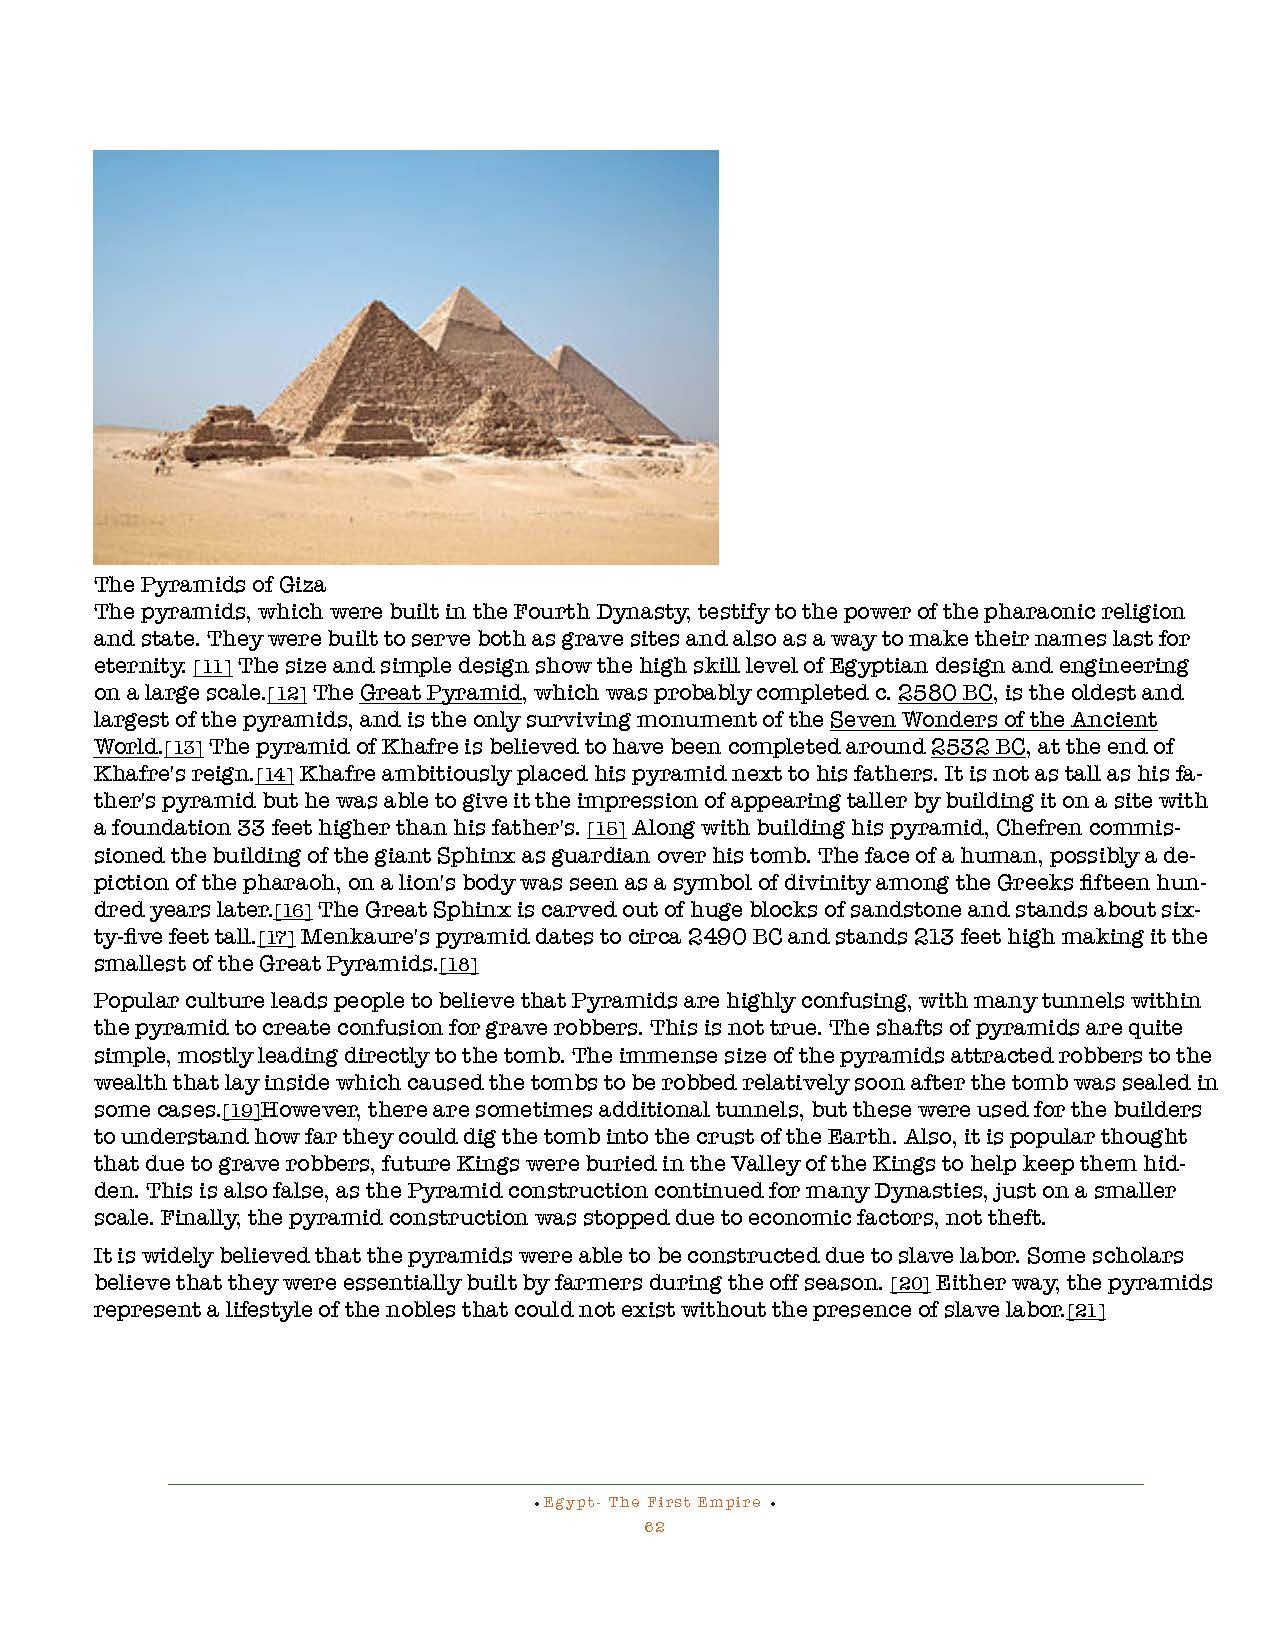 HOCE- Egypt  (First Empire) Notes_Page_062.jpg